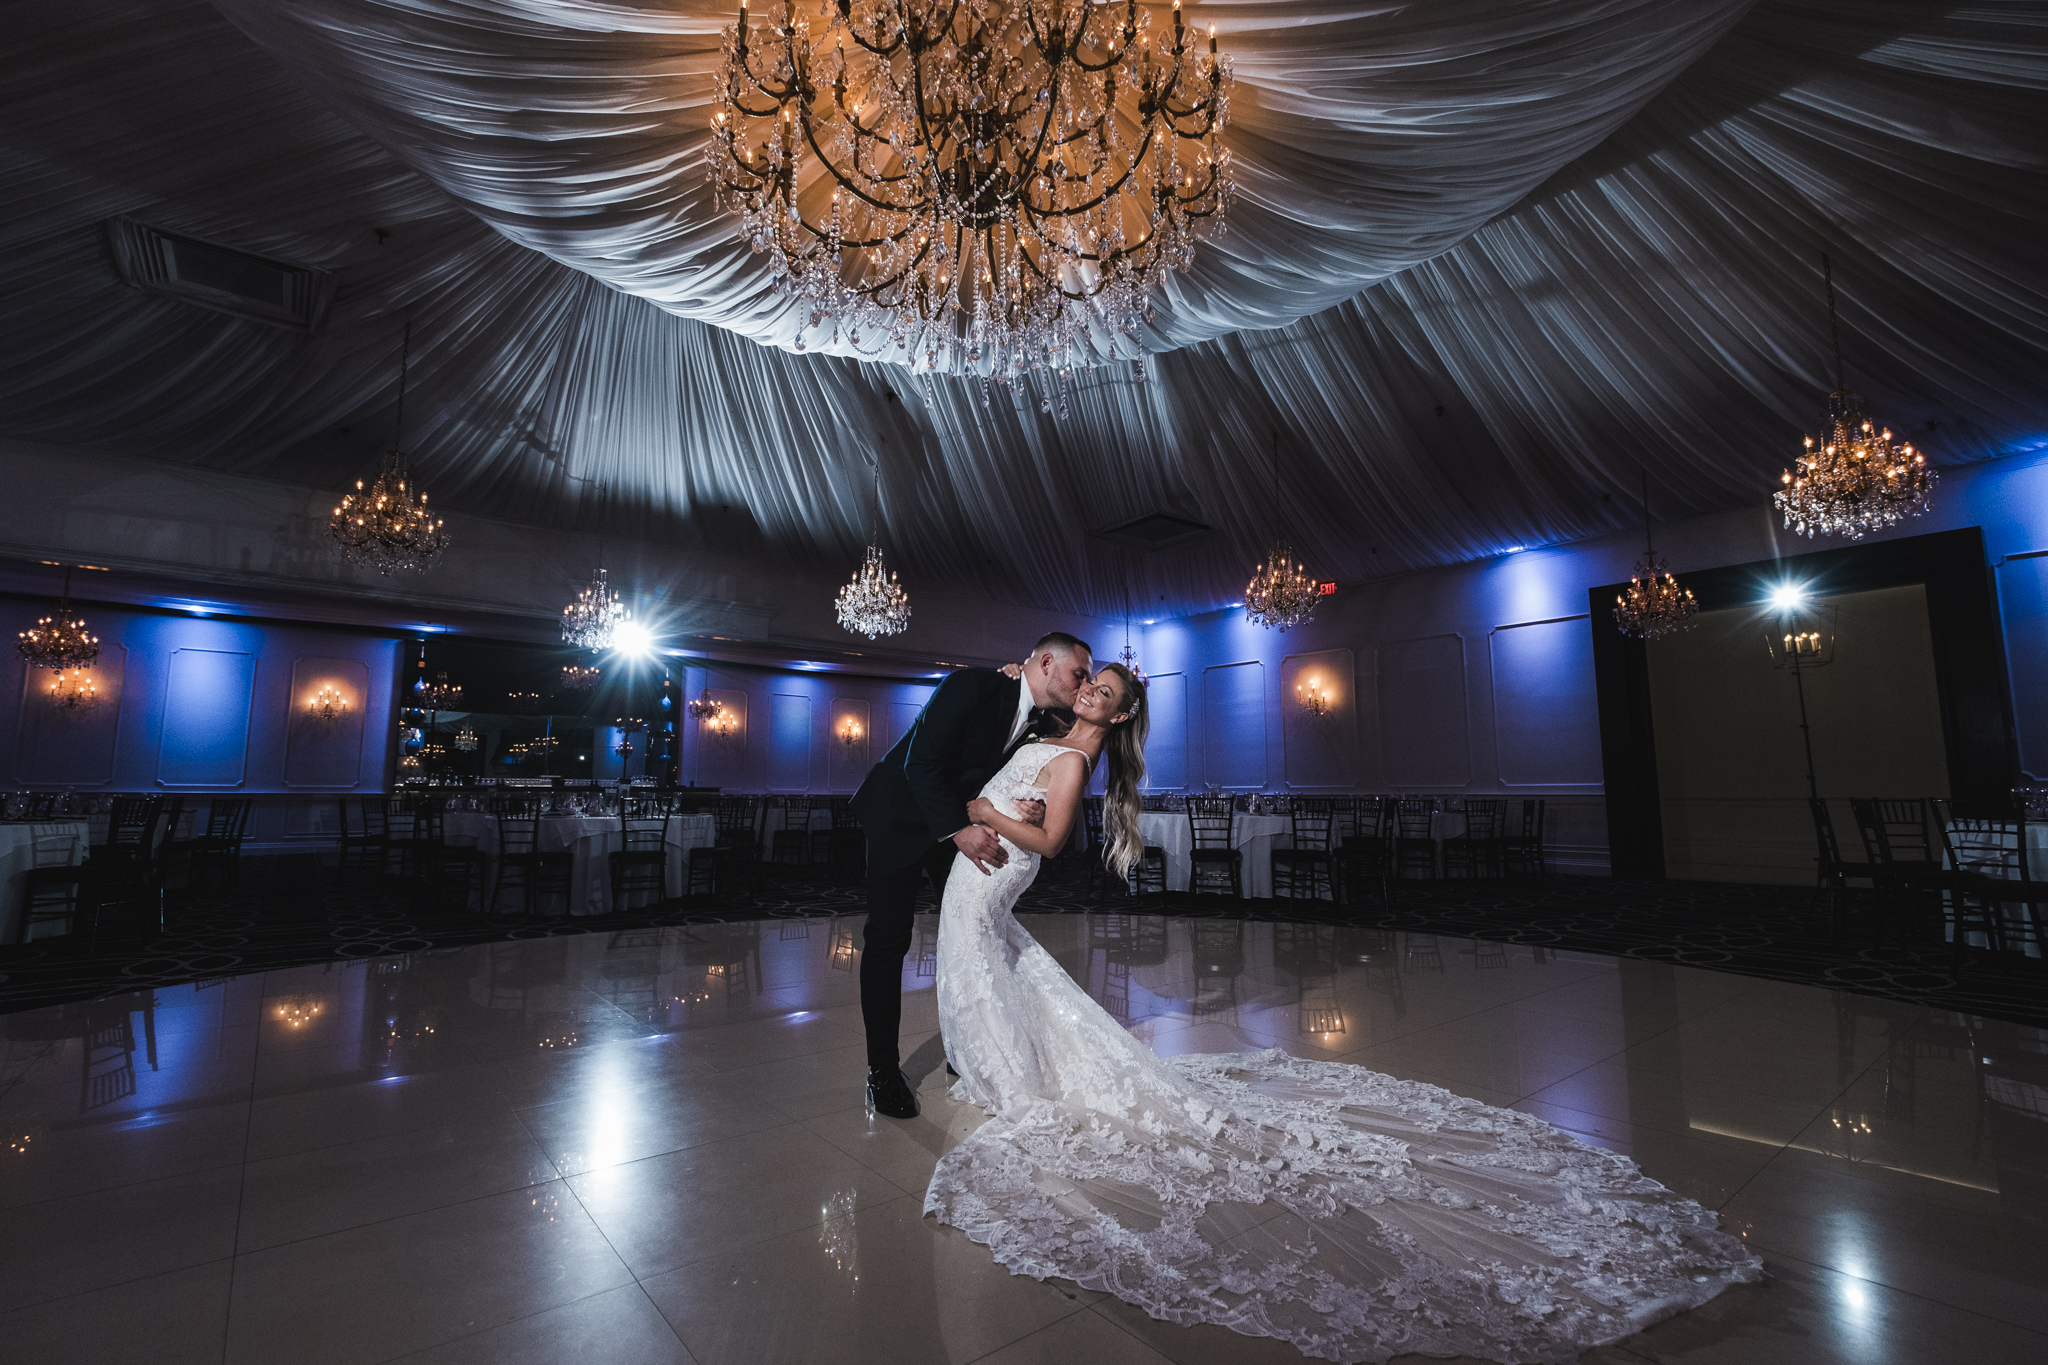 Carlos Alvarado Photography NJ WEDDING (1 of 1)-2.jpg